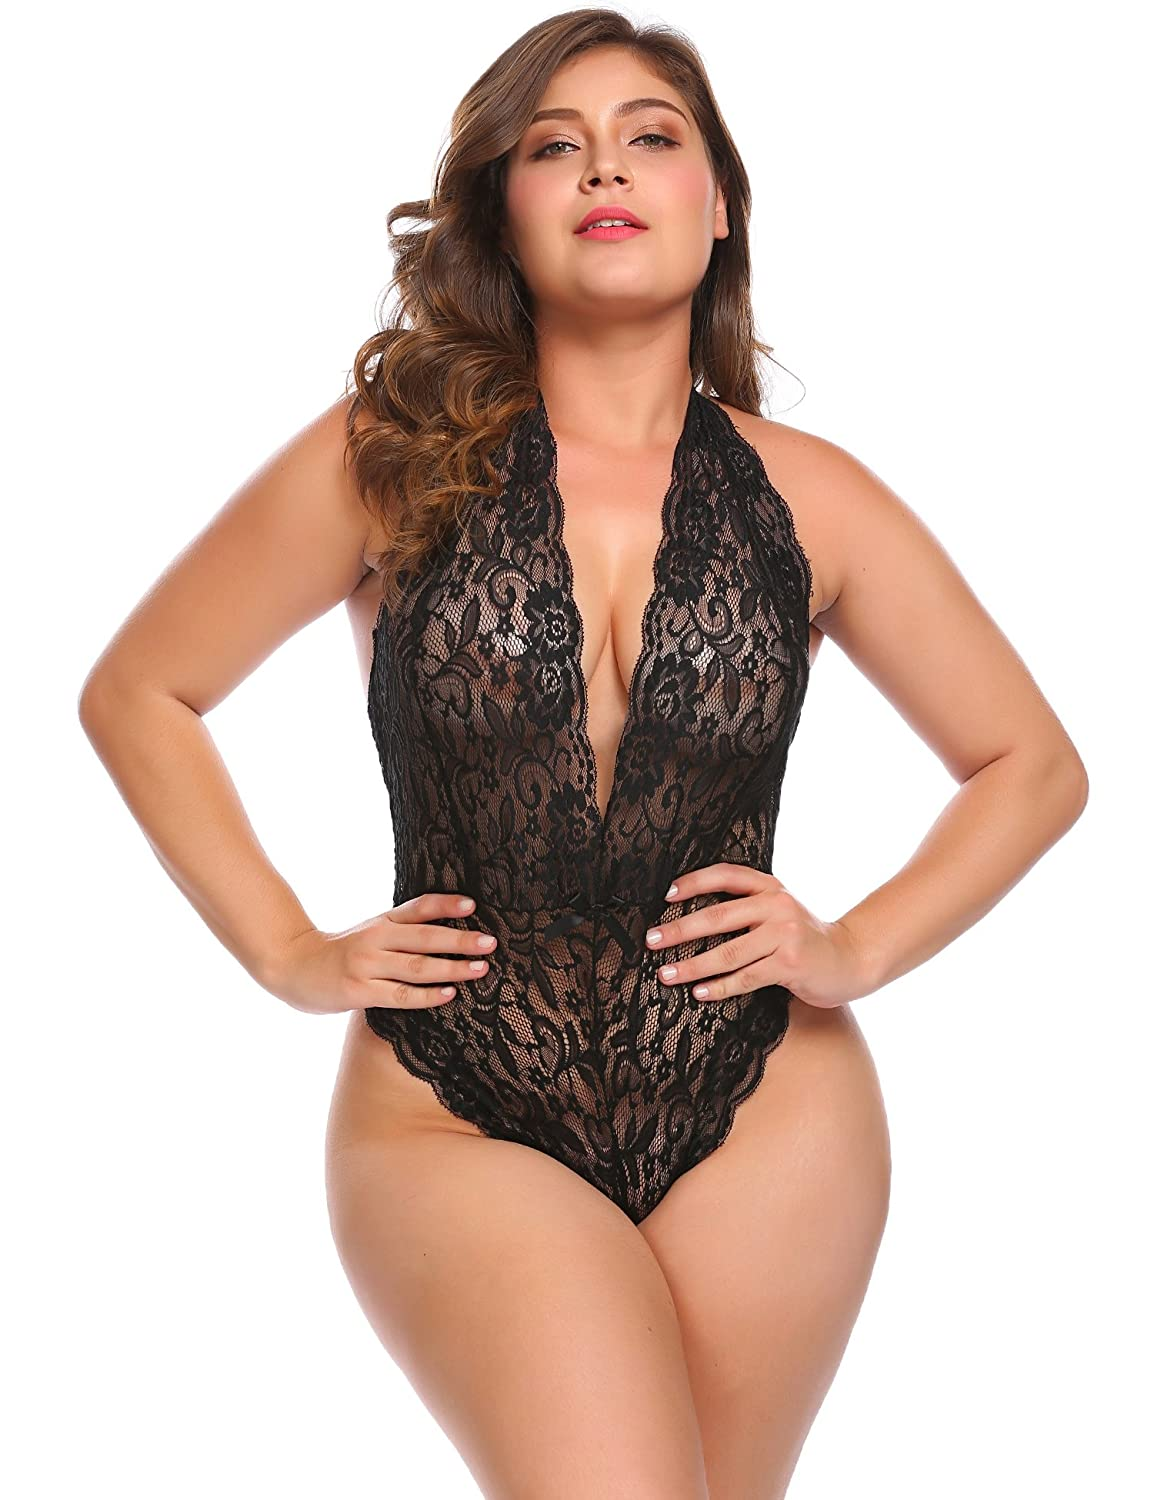 Plus Size Women Halter Sexy One Piece Lingerie Lace Teddy Bodysuit Deep V  Sleepwear at Amazon Women s Clothing store  55486351a